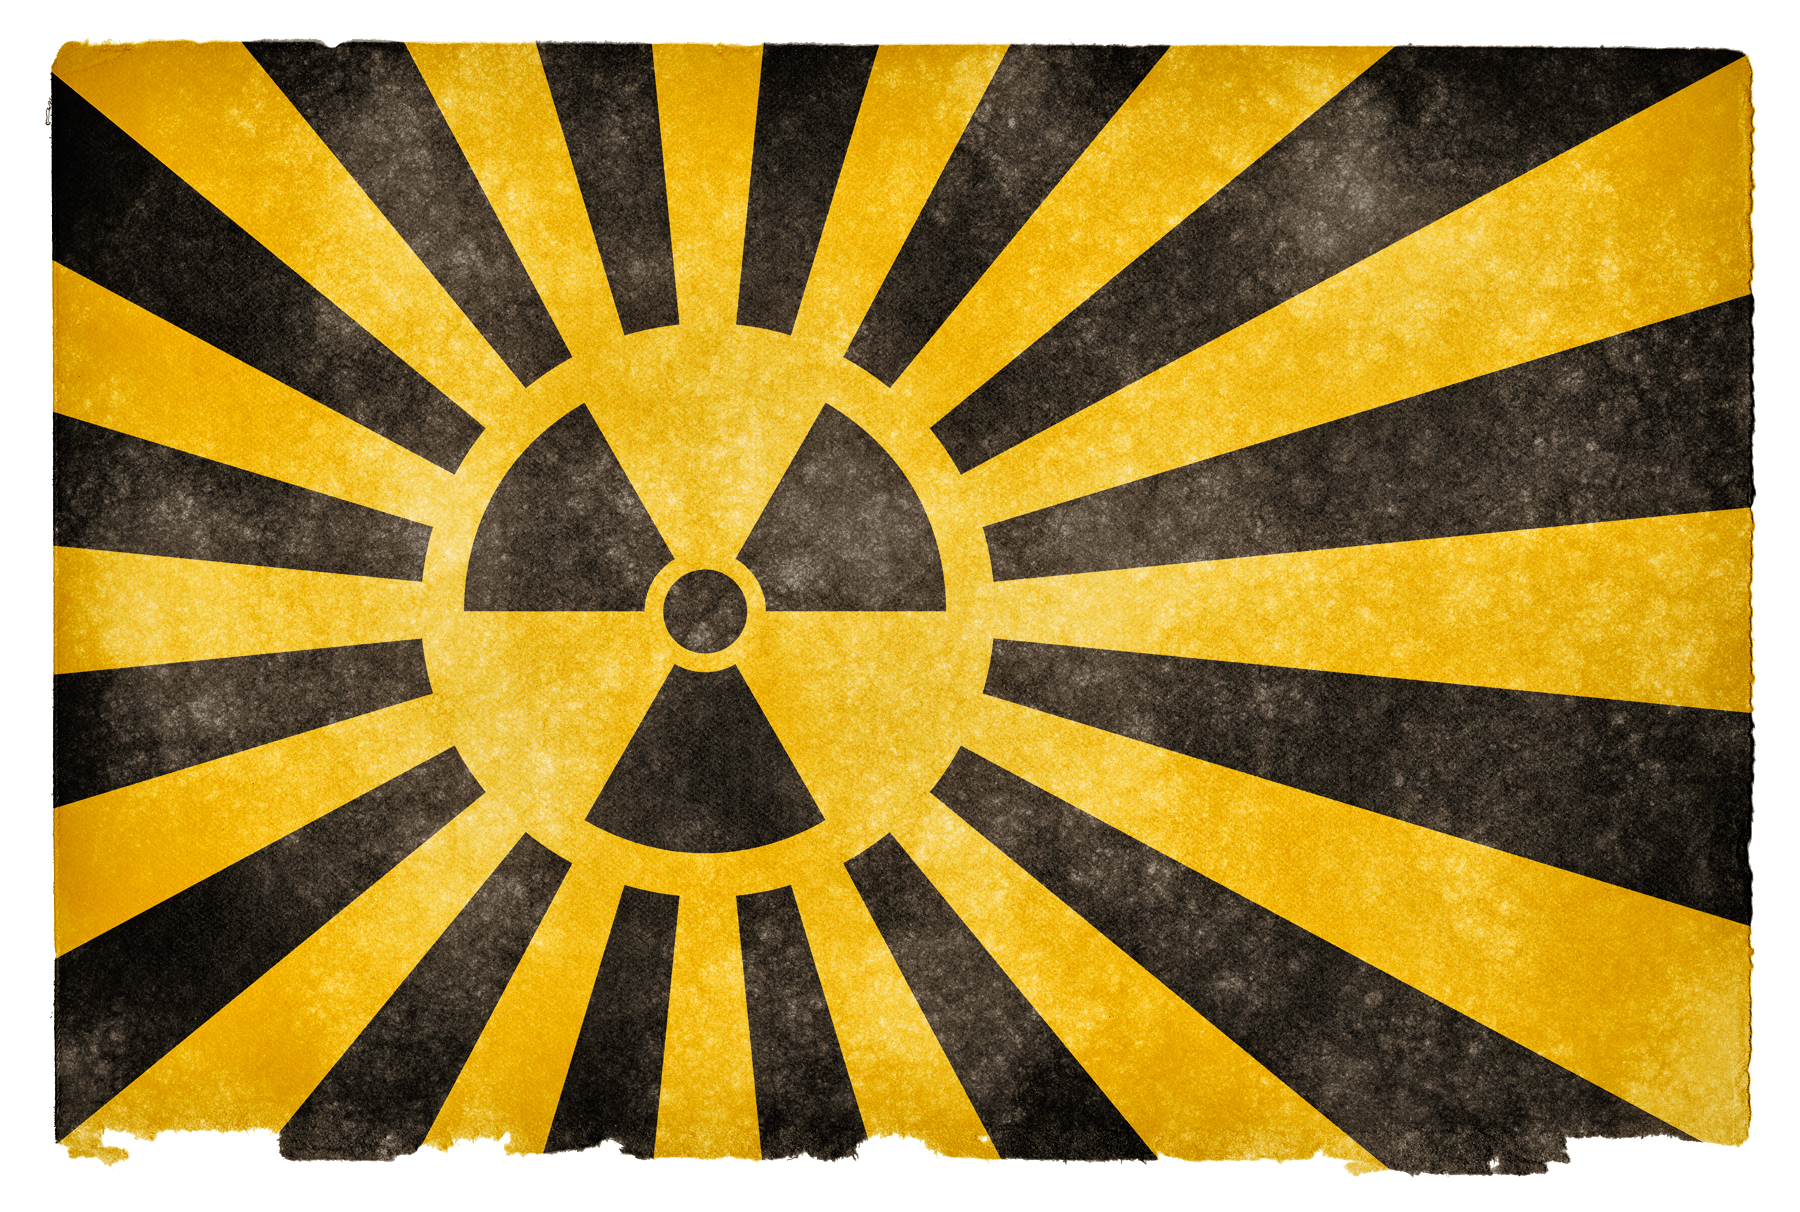 Nuclear burst grunge flag photo